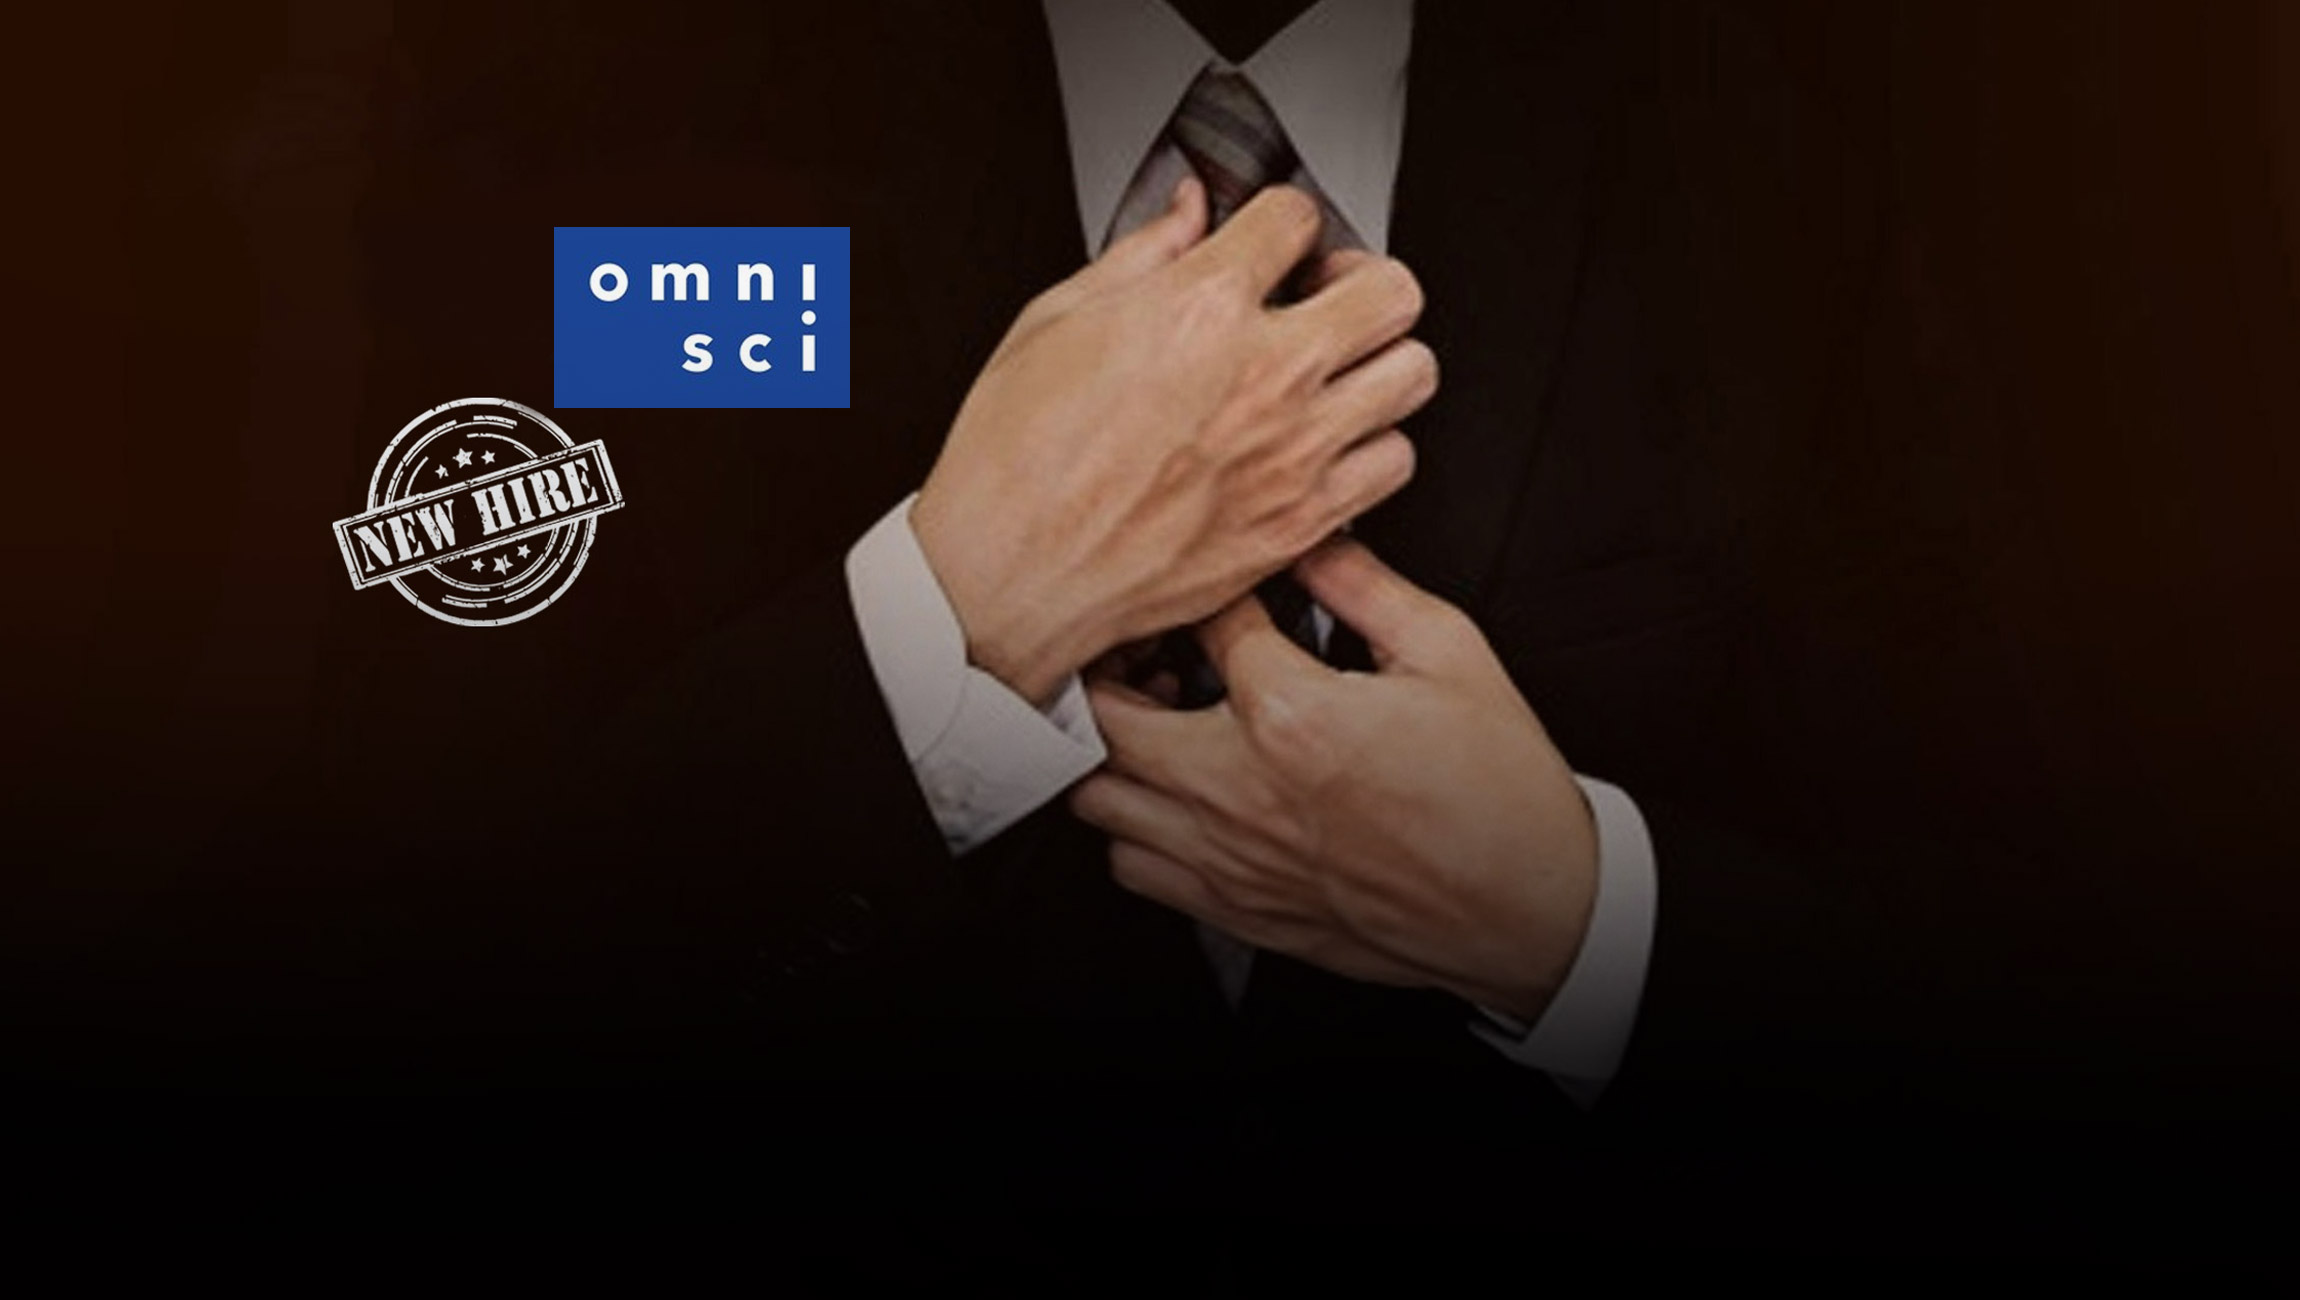 OmniSci Announces Expansion to Address Growing Demand in Asia, Adds Joseph Lee as Vice President, Global Sales